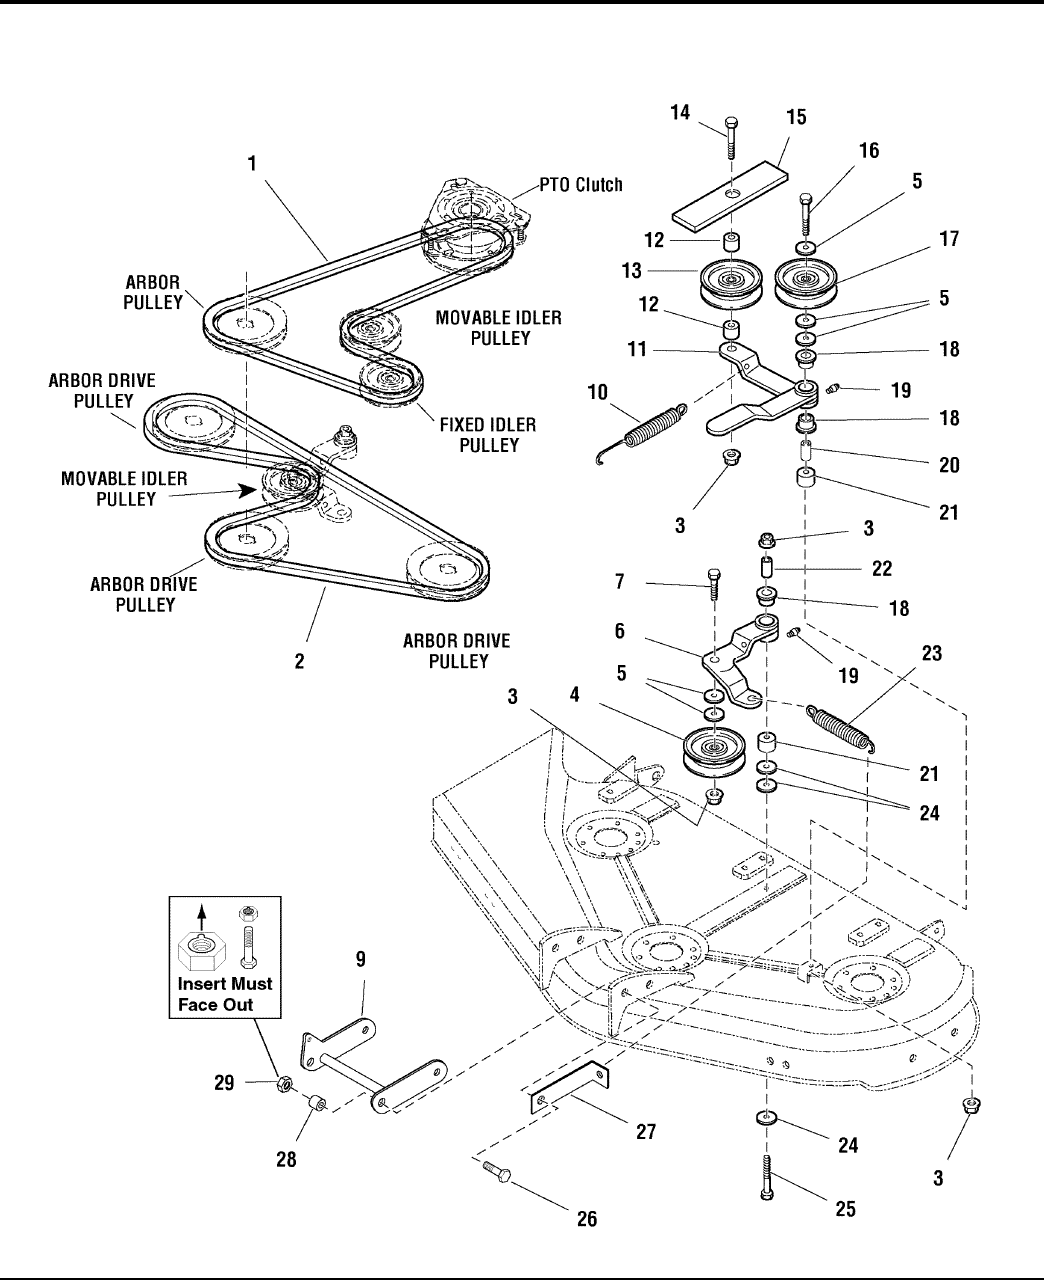 Page 54 of Simplicity Lawn Mower Lancer / 4400 User Guide